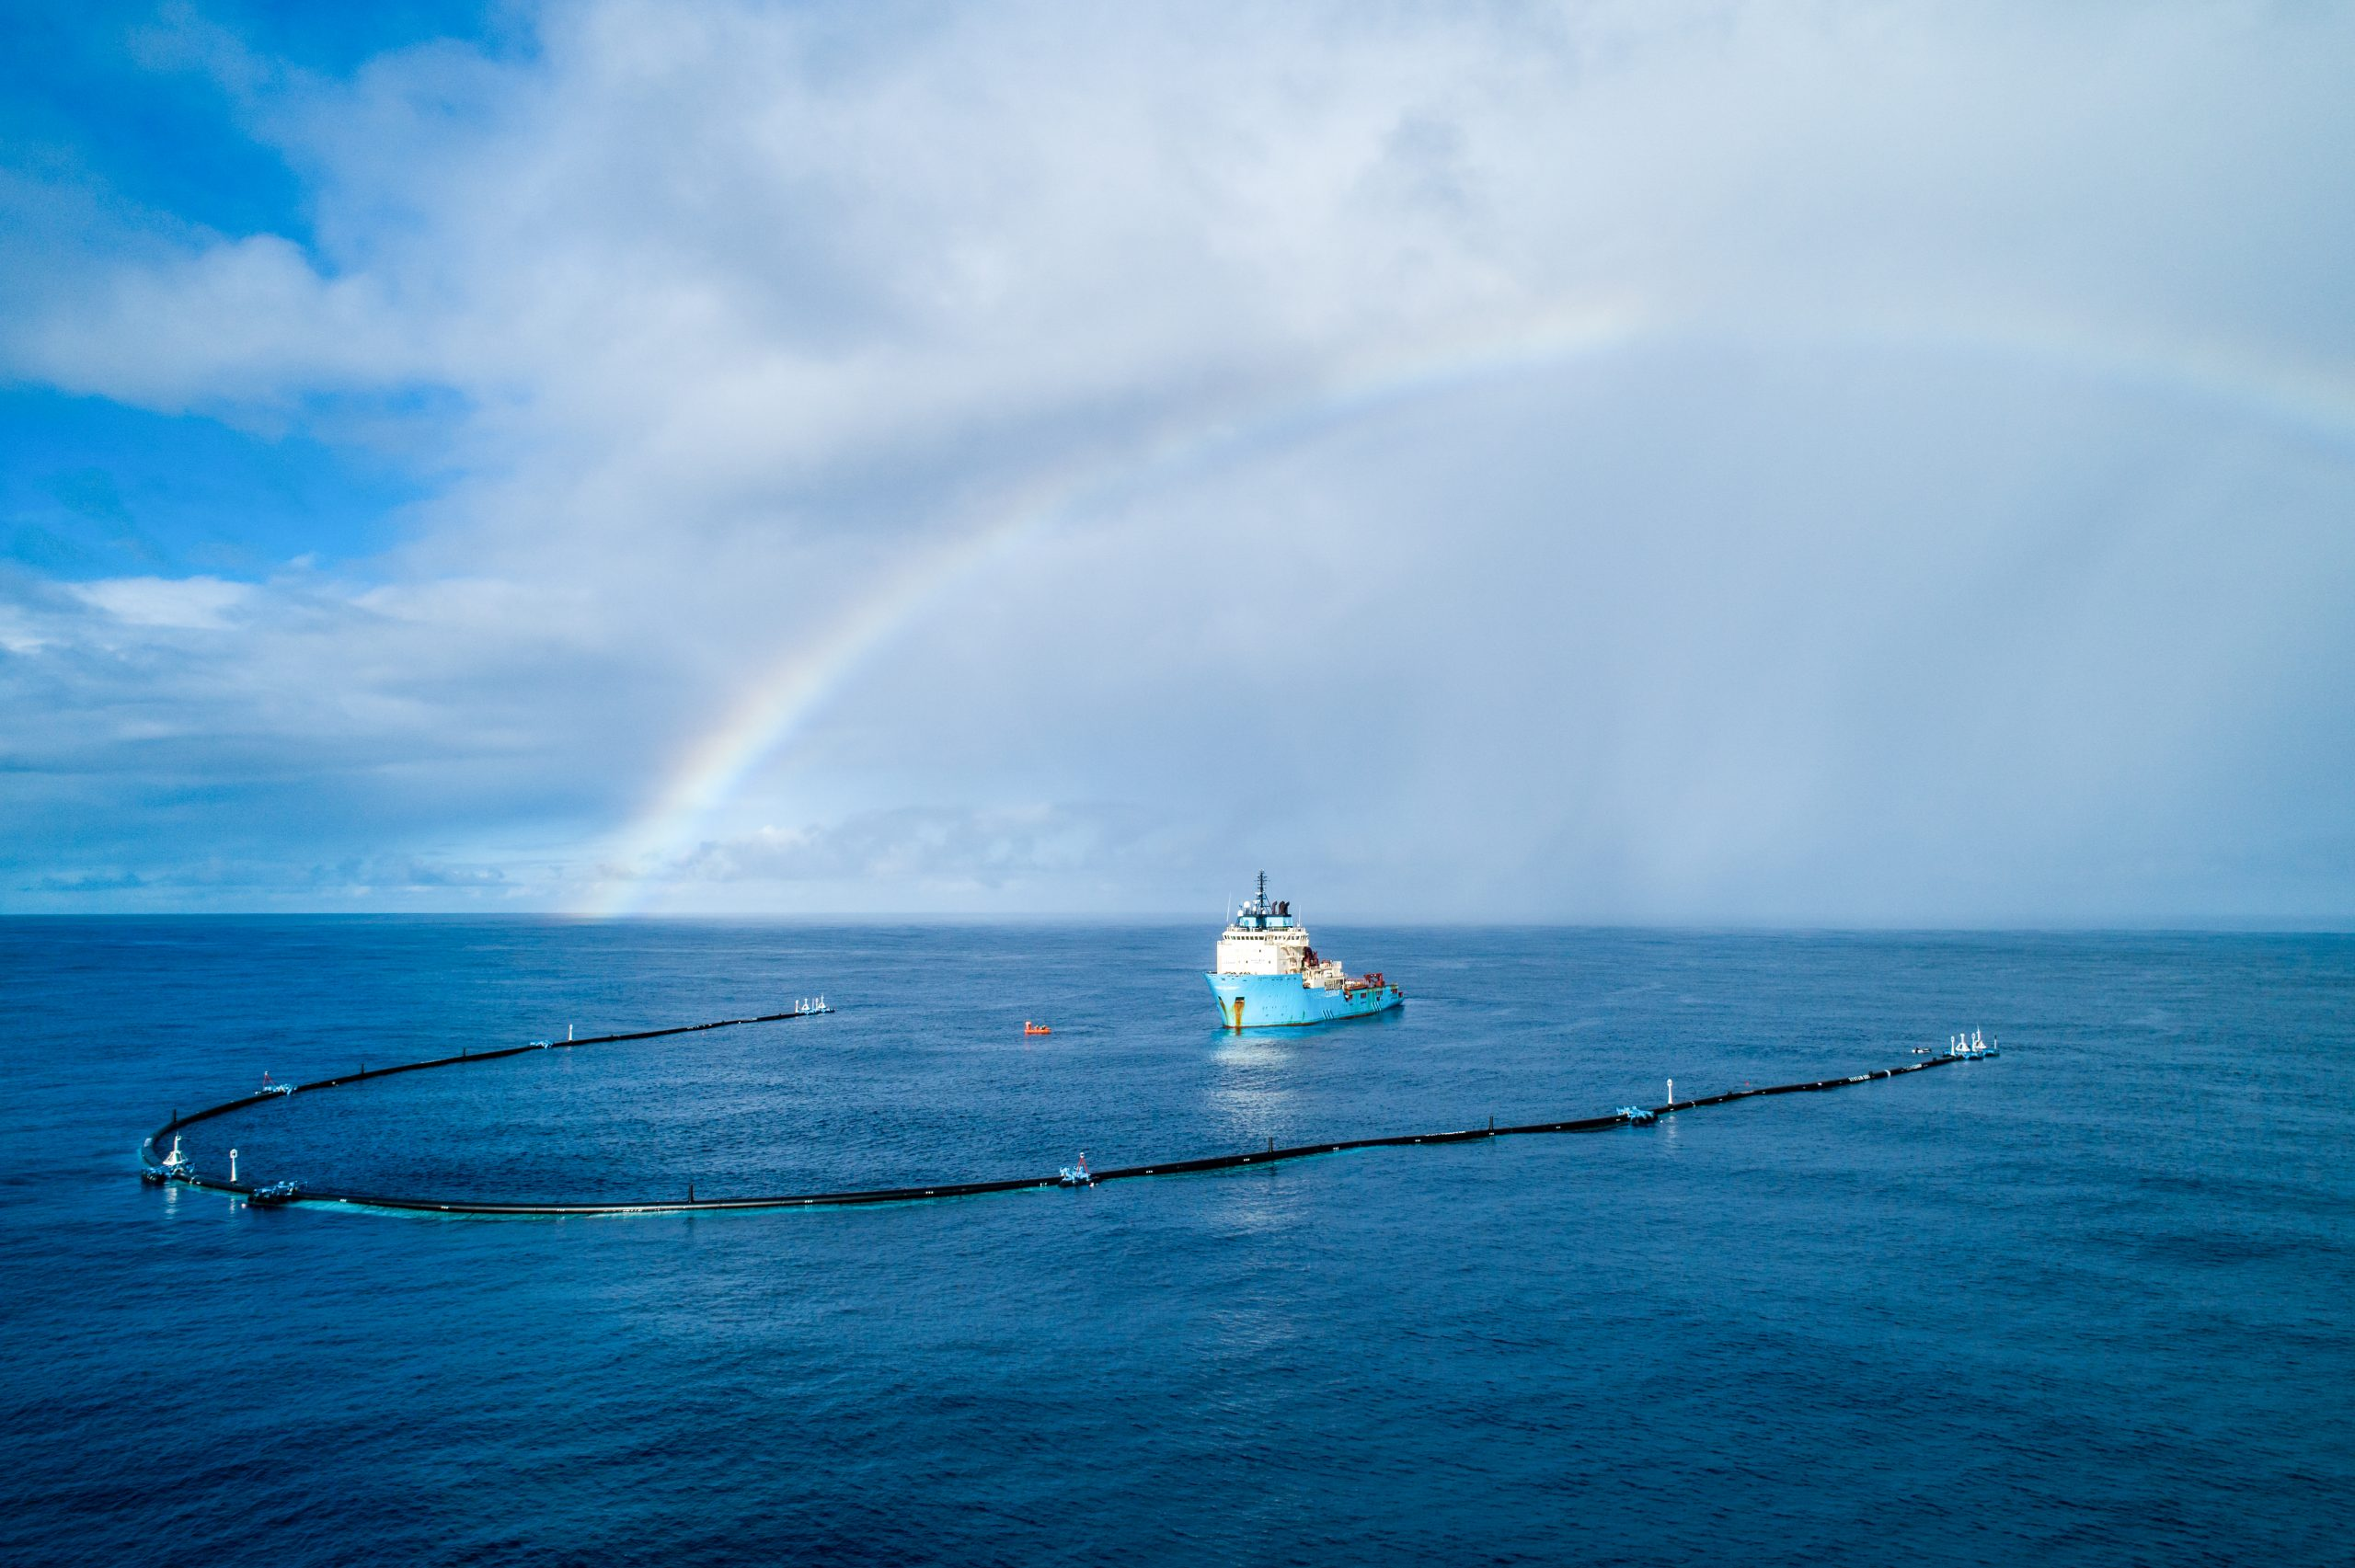 Ecocoast Partnered with The Ocean Cleanup